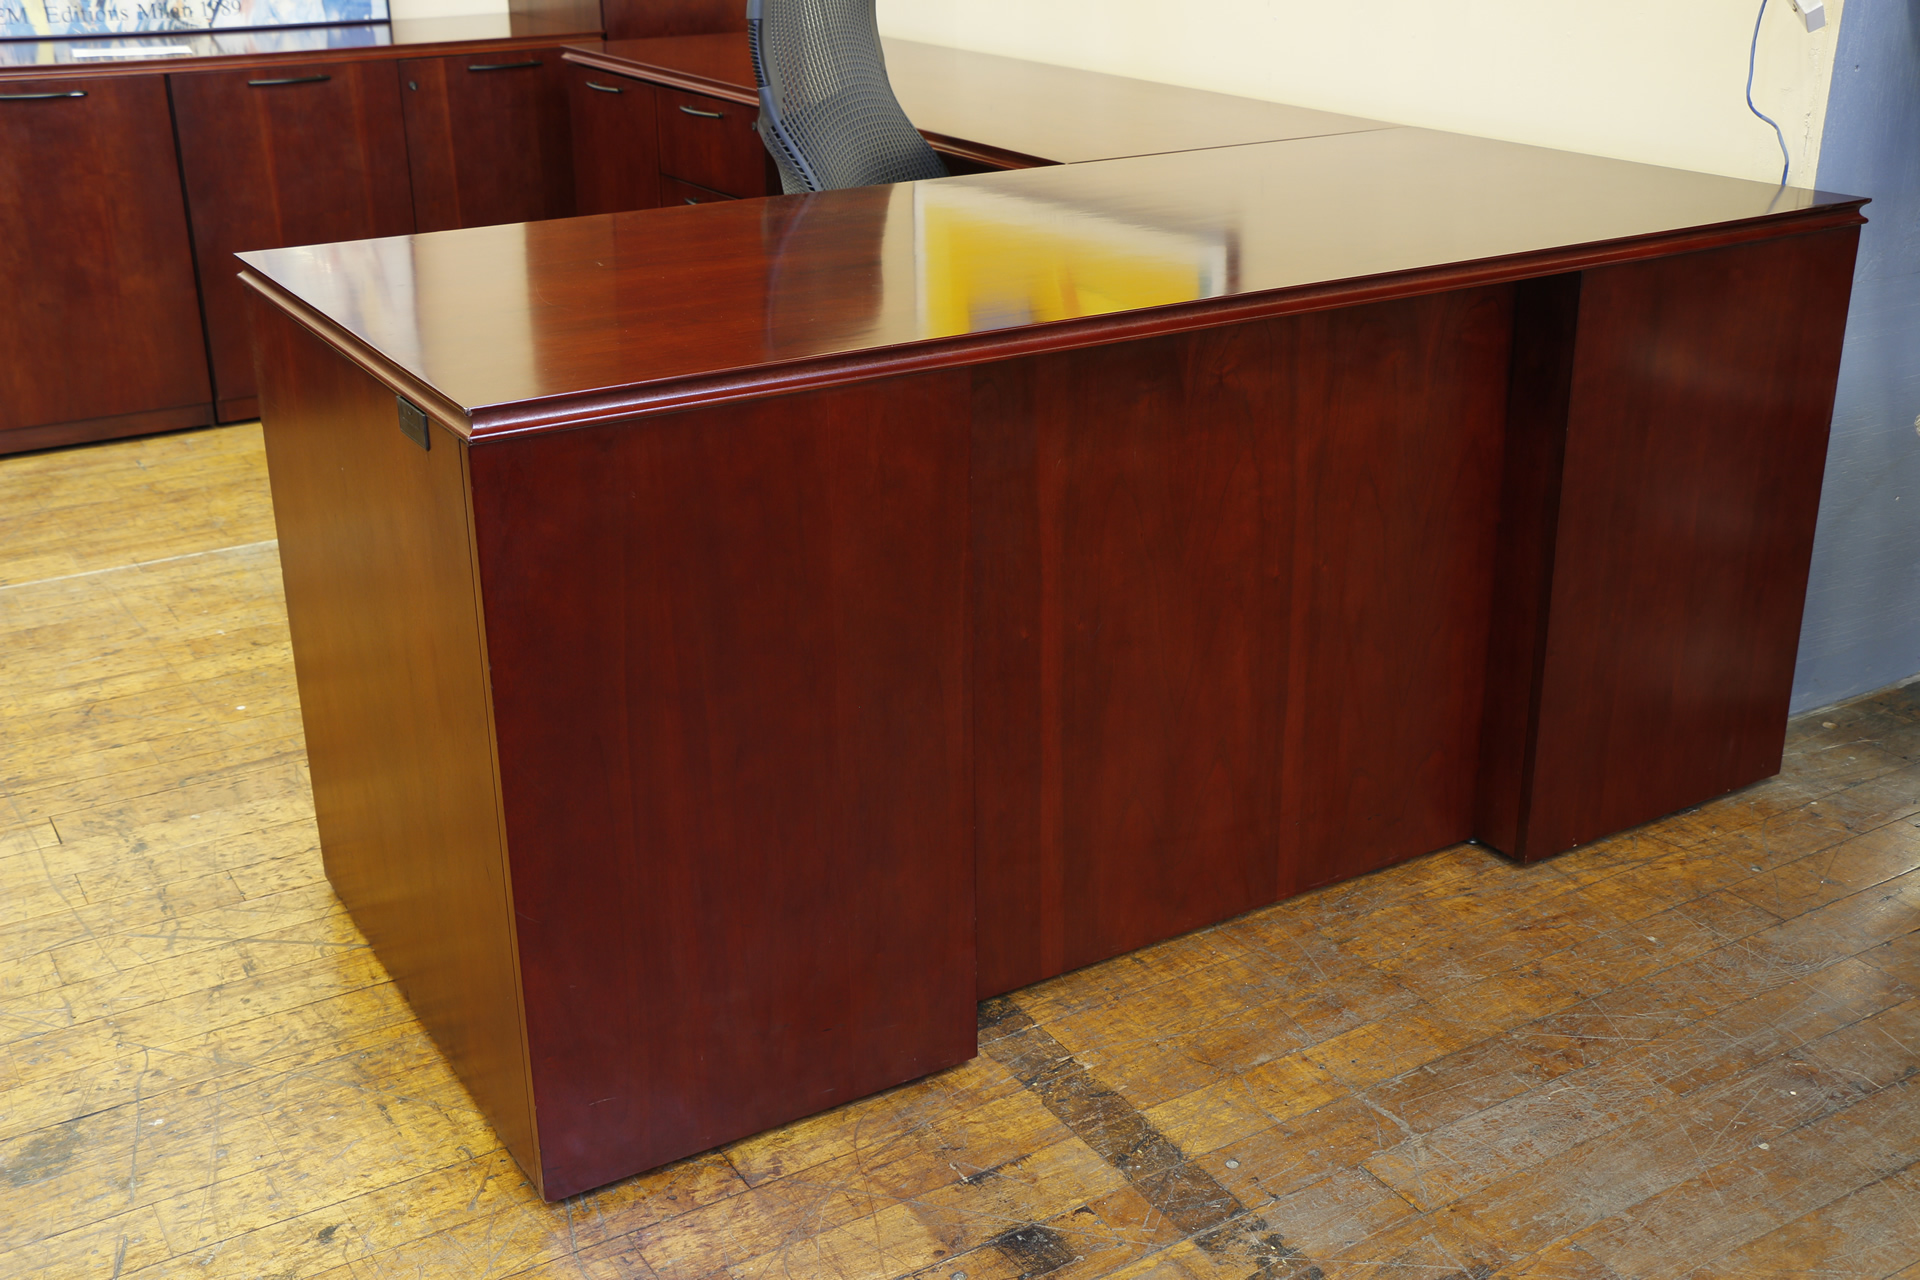 peartreeofficefurniture_peartreeofficefurniture_mg_4218.jpg